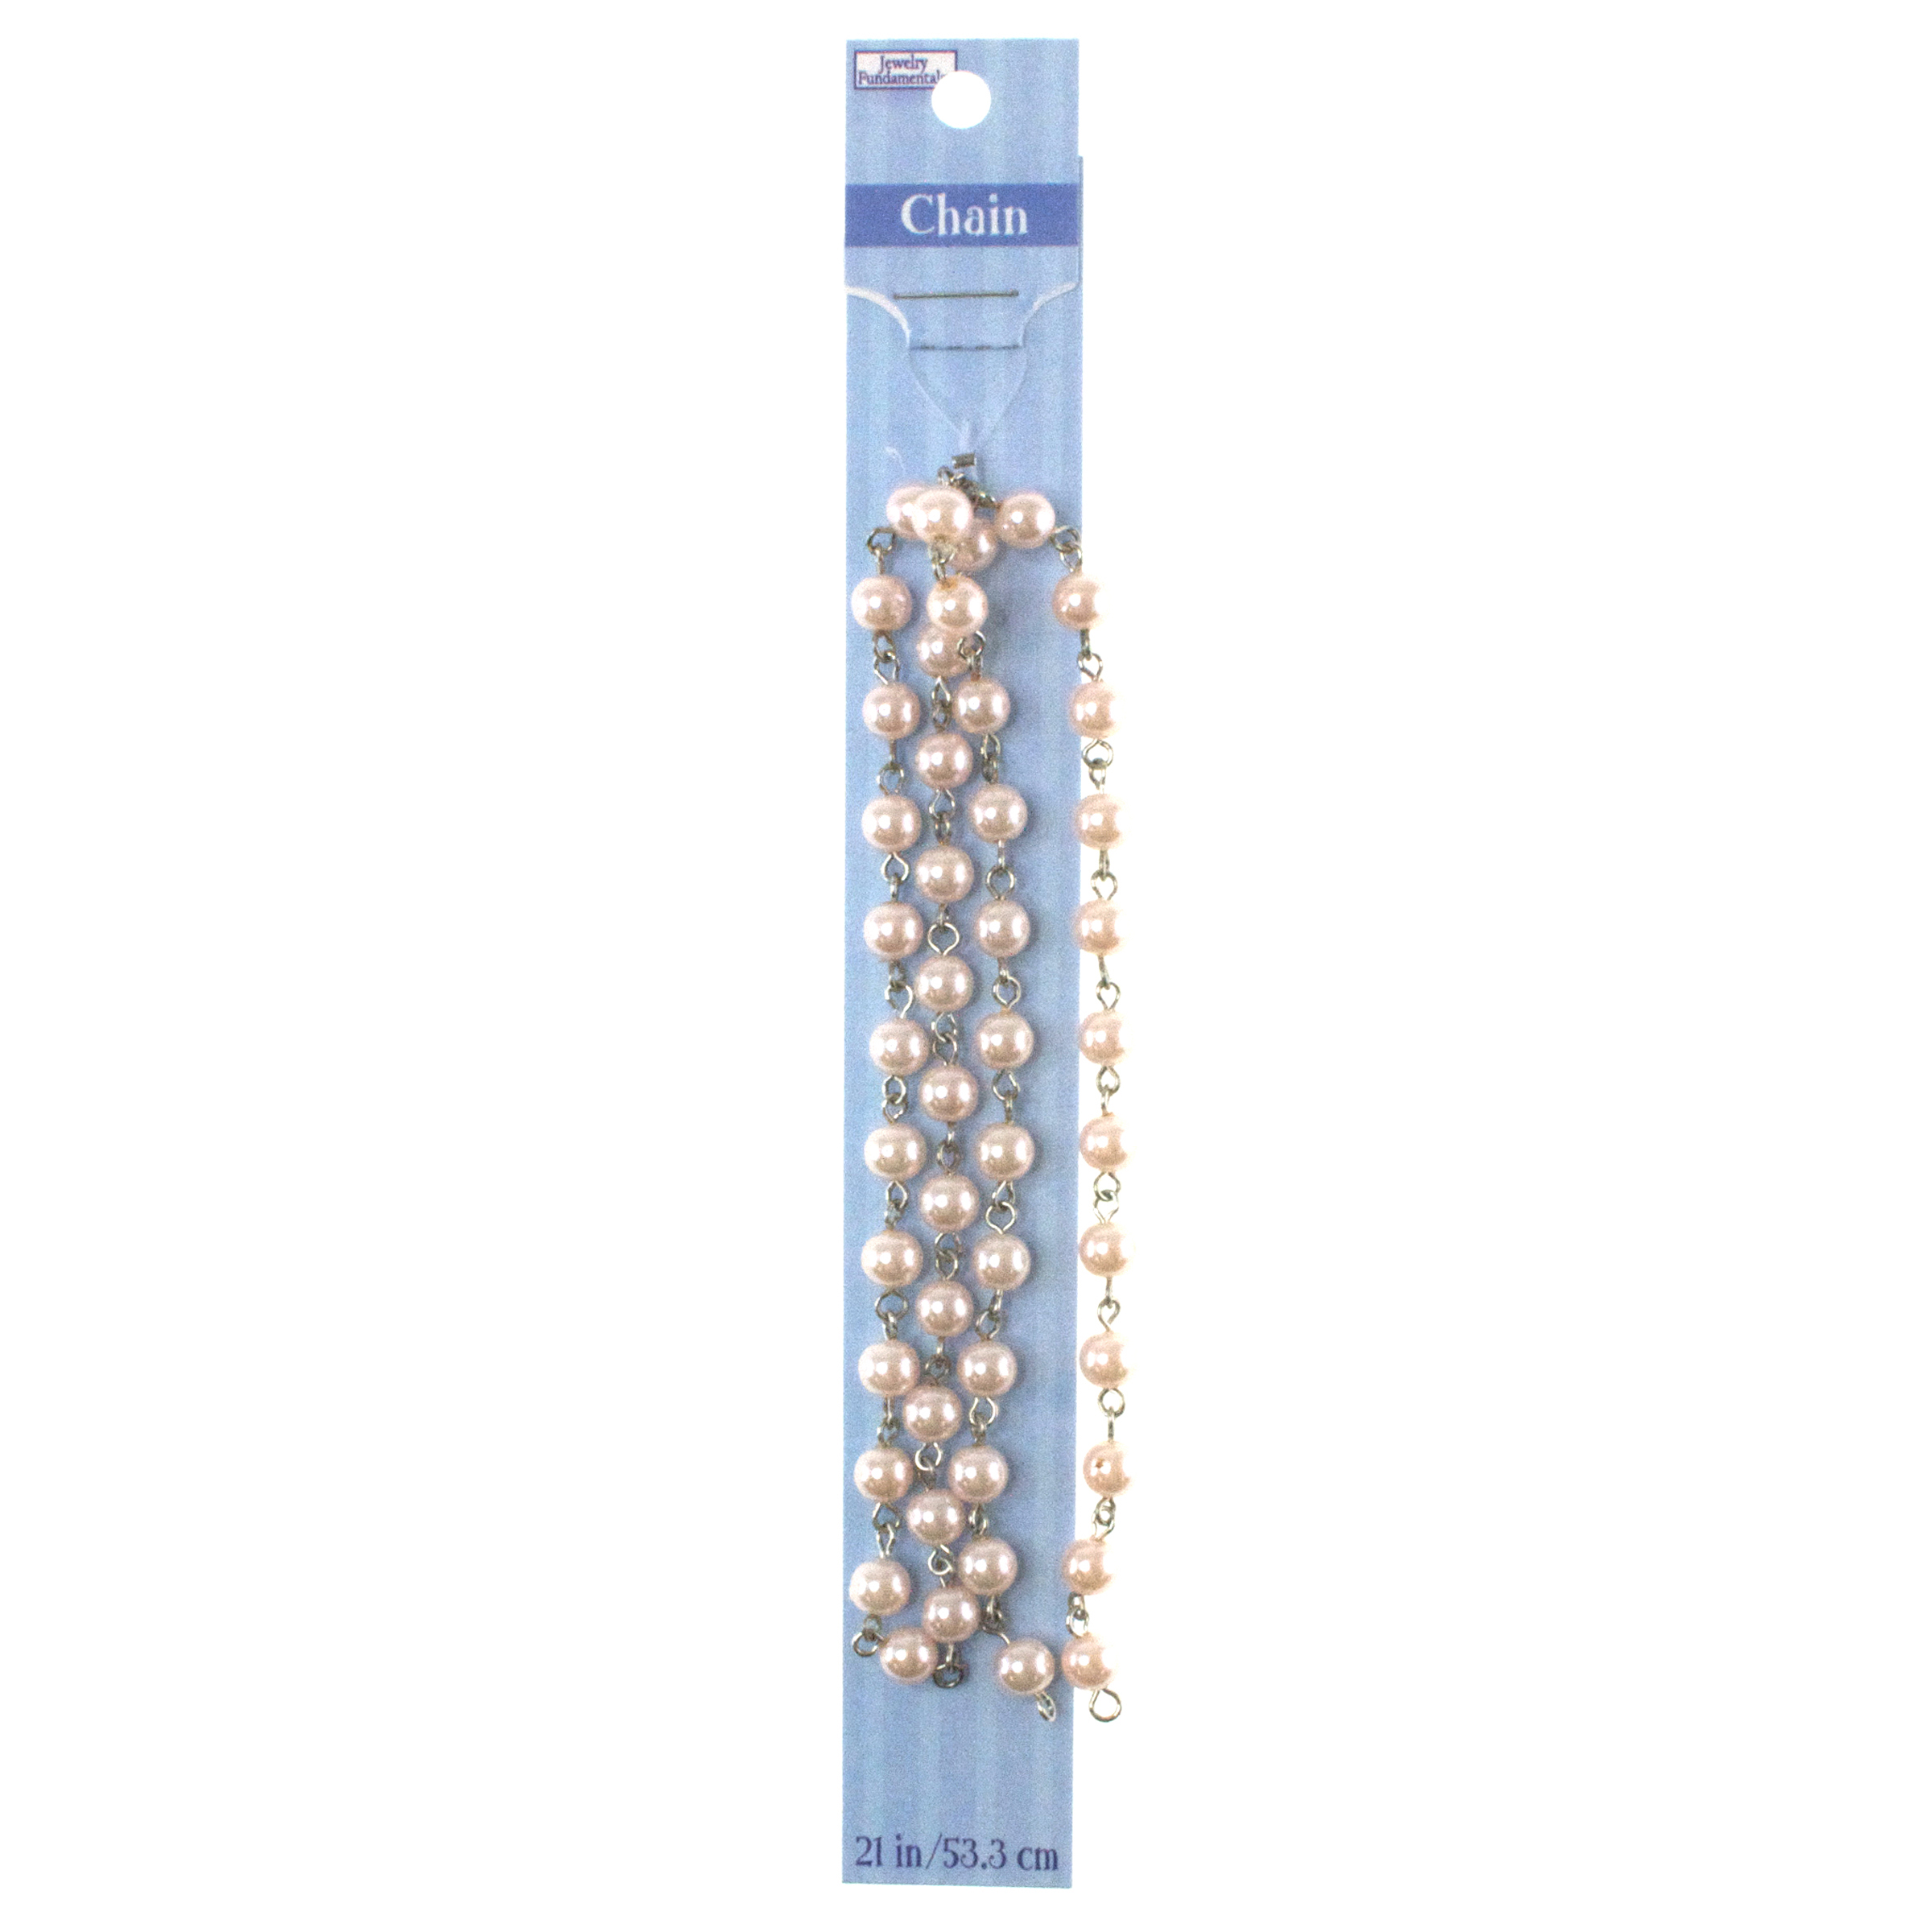 Jewelry Fundamentals 21 in. Chain-Pearly Pink Links